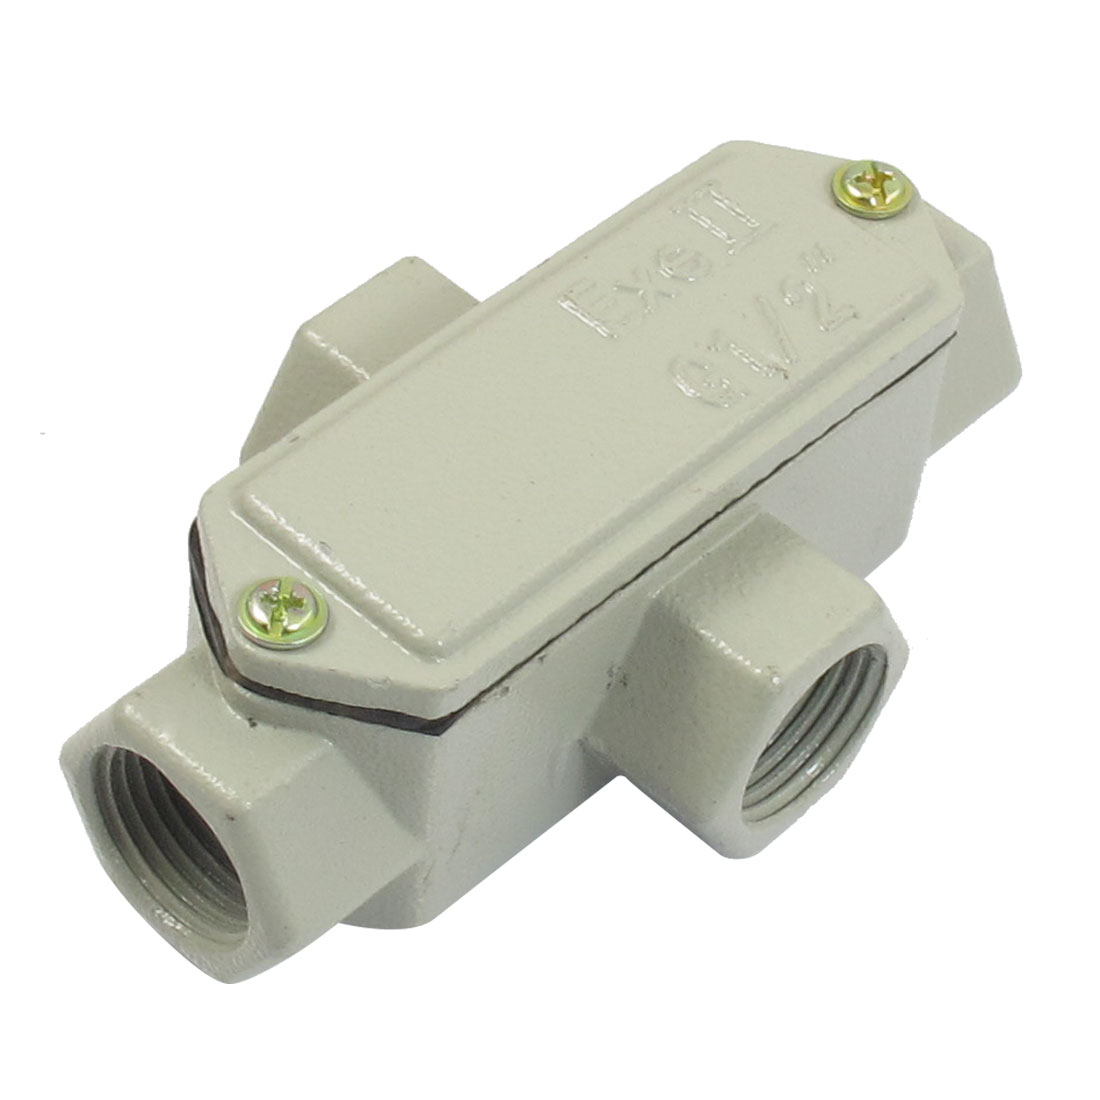 "G1/2"" Metal Case 4 Hub Explosion-proof Conduit Outlet Box"